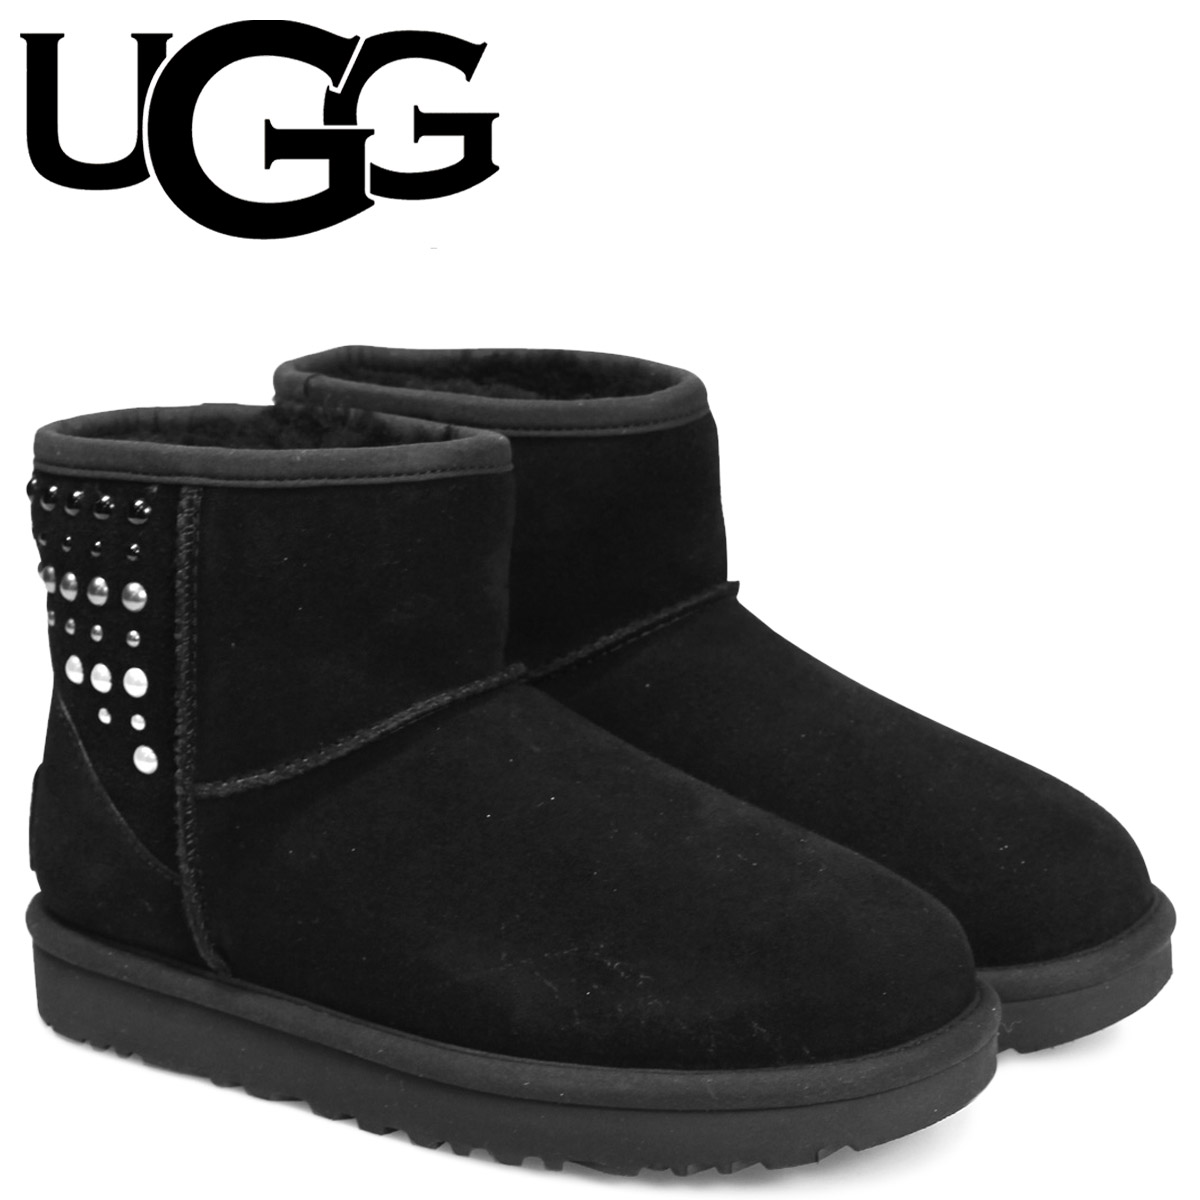 Ugg UGG boots Sheepskin Boots Classic mini ladies WOMANS 1012393 CLASSIC MINI PEARLS genuine